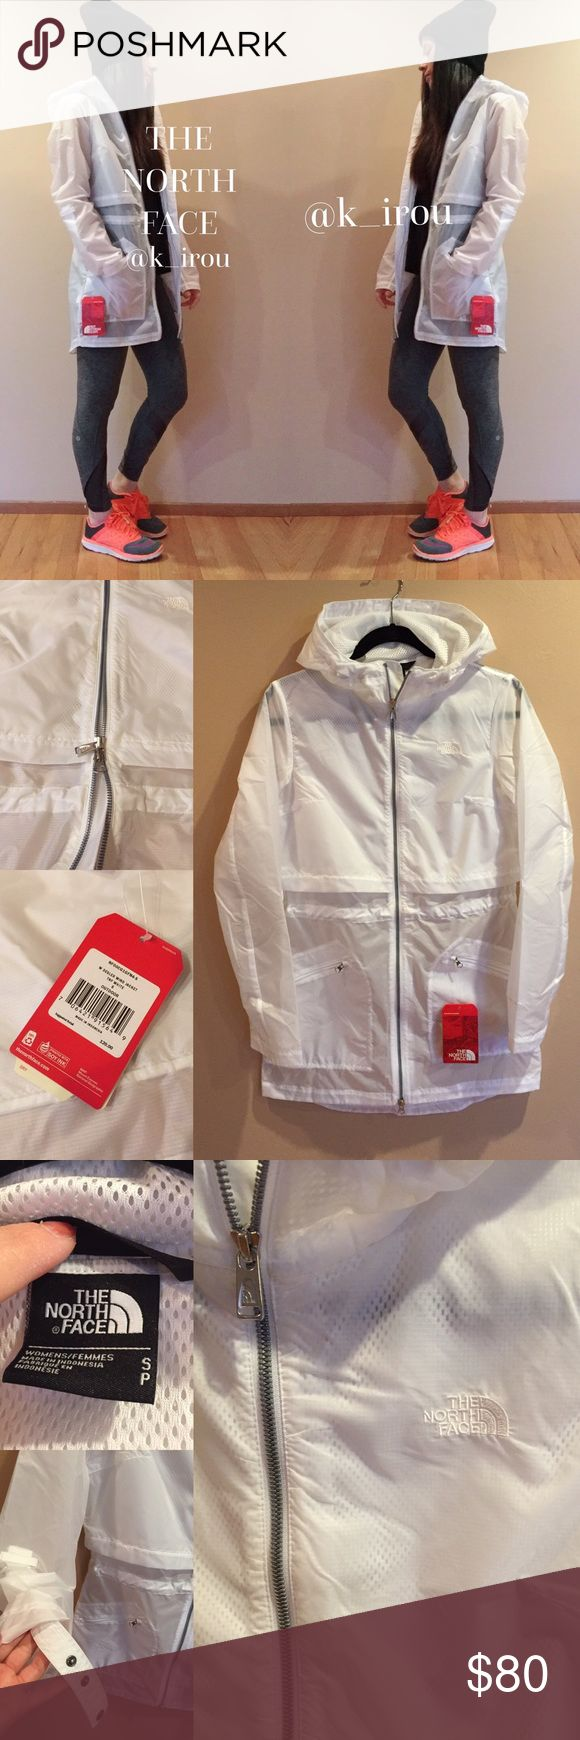 """White windbreaker jacket Brand new very cute white windbreaker jacket from the north face. Model is 5'2"""" 115lbs wearing this size small jacket. It's a long jacket and slightly see through. The half down is little more see through than top half. There's two way zipper. And adjustable for the waist from inside the jacket. And there's zipper side pocket on each side. North Face Jackets & Coats"""